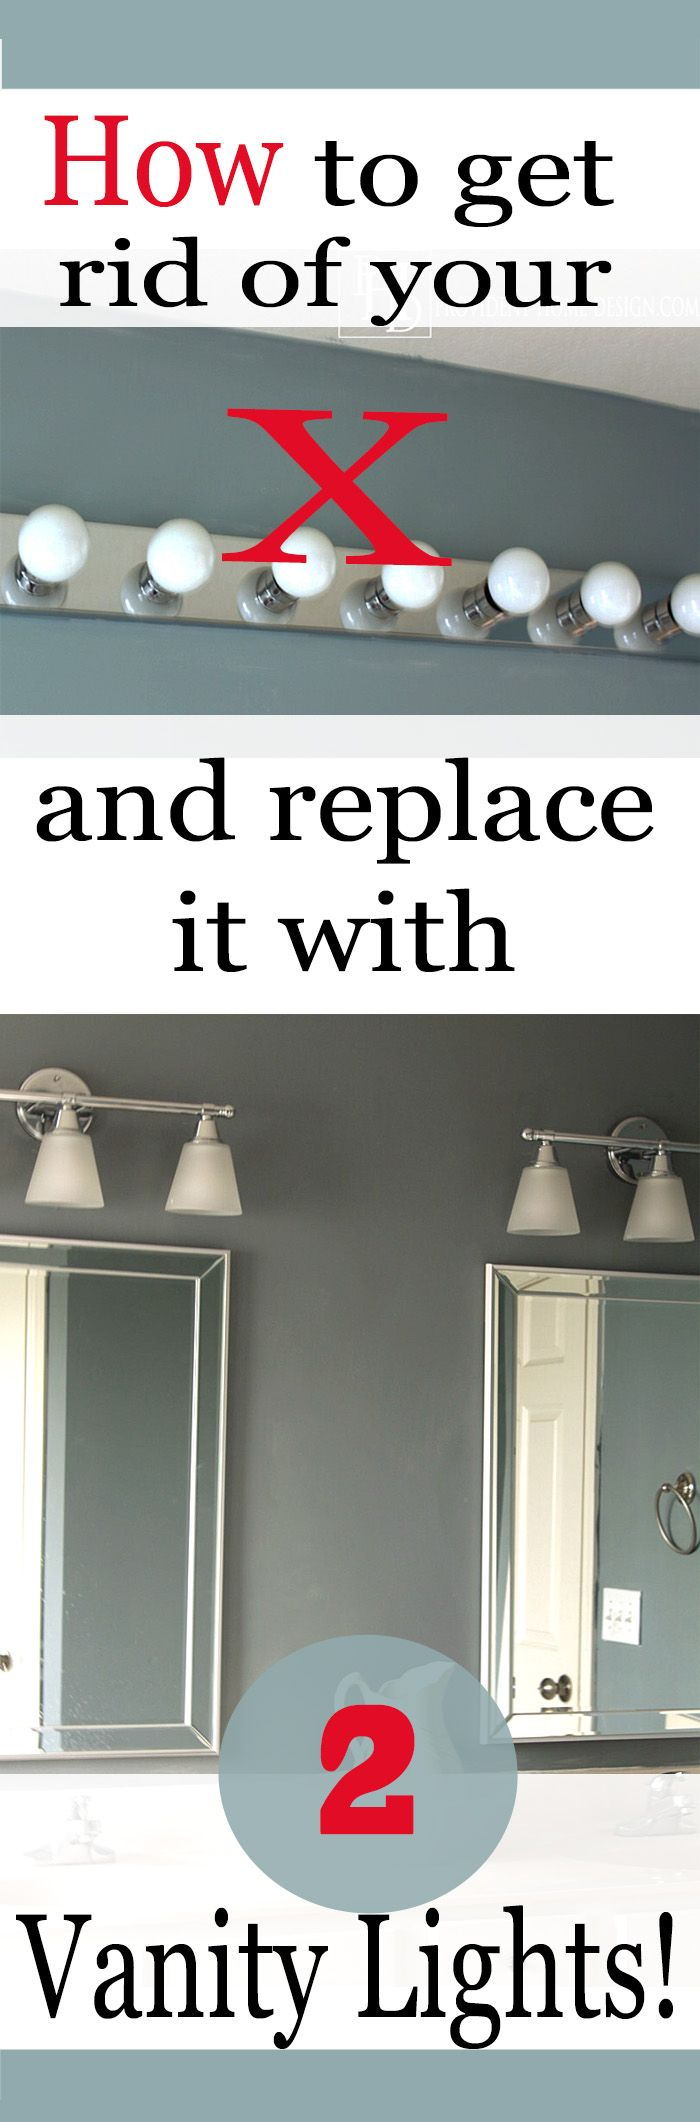 Updating Bathroom Vanity Lights how to replace a hollywood light with 2 vanity lights | vanities